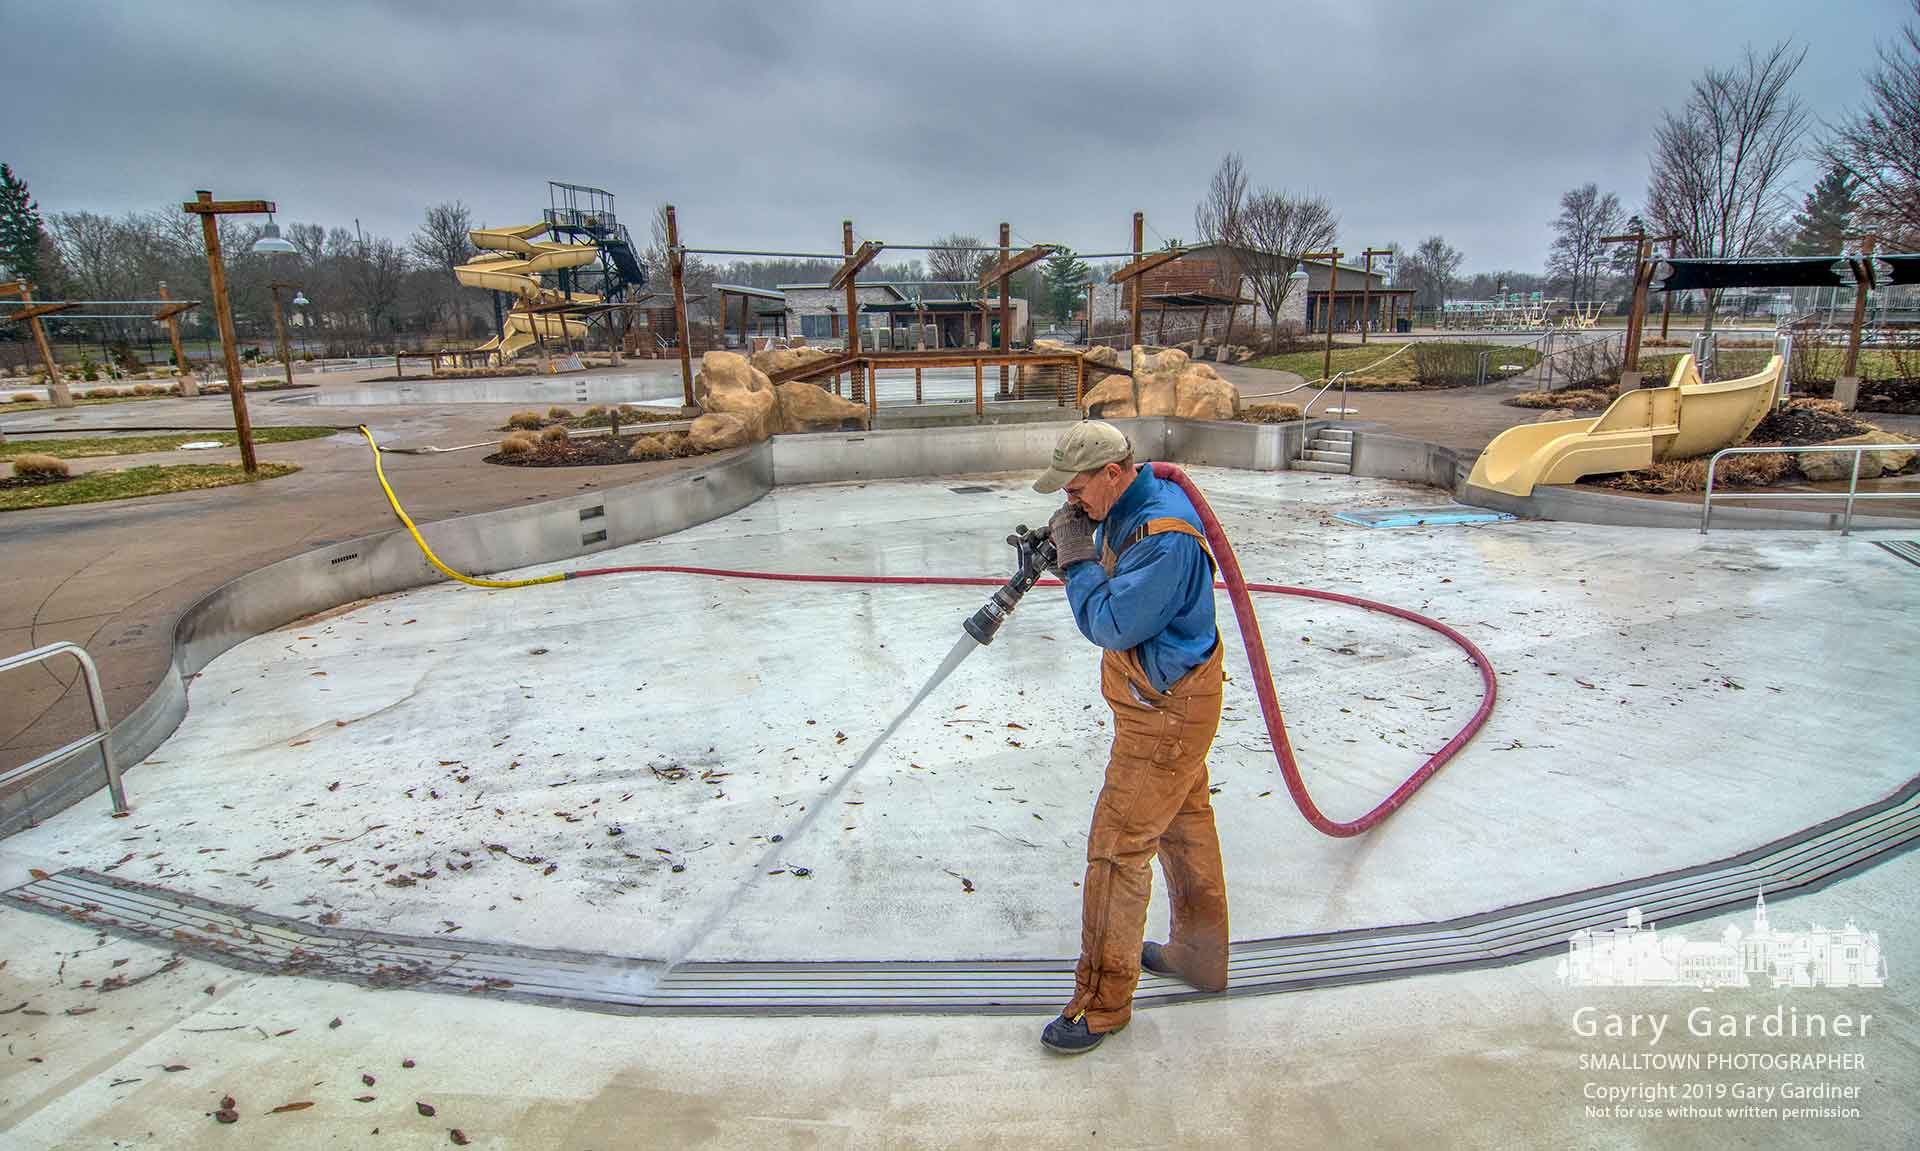 A work crew hoses away the winter dirt and grime from the pools at Highlands as the city prepares to open it about two weeks early this summer. My Final Photo for March 29, 2019.